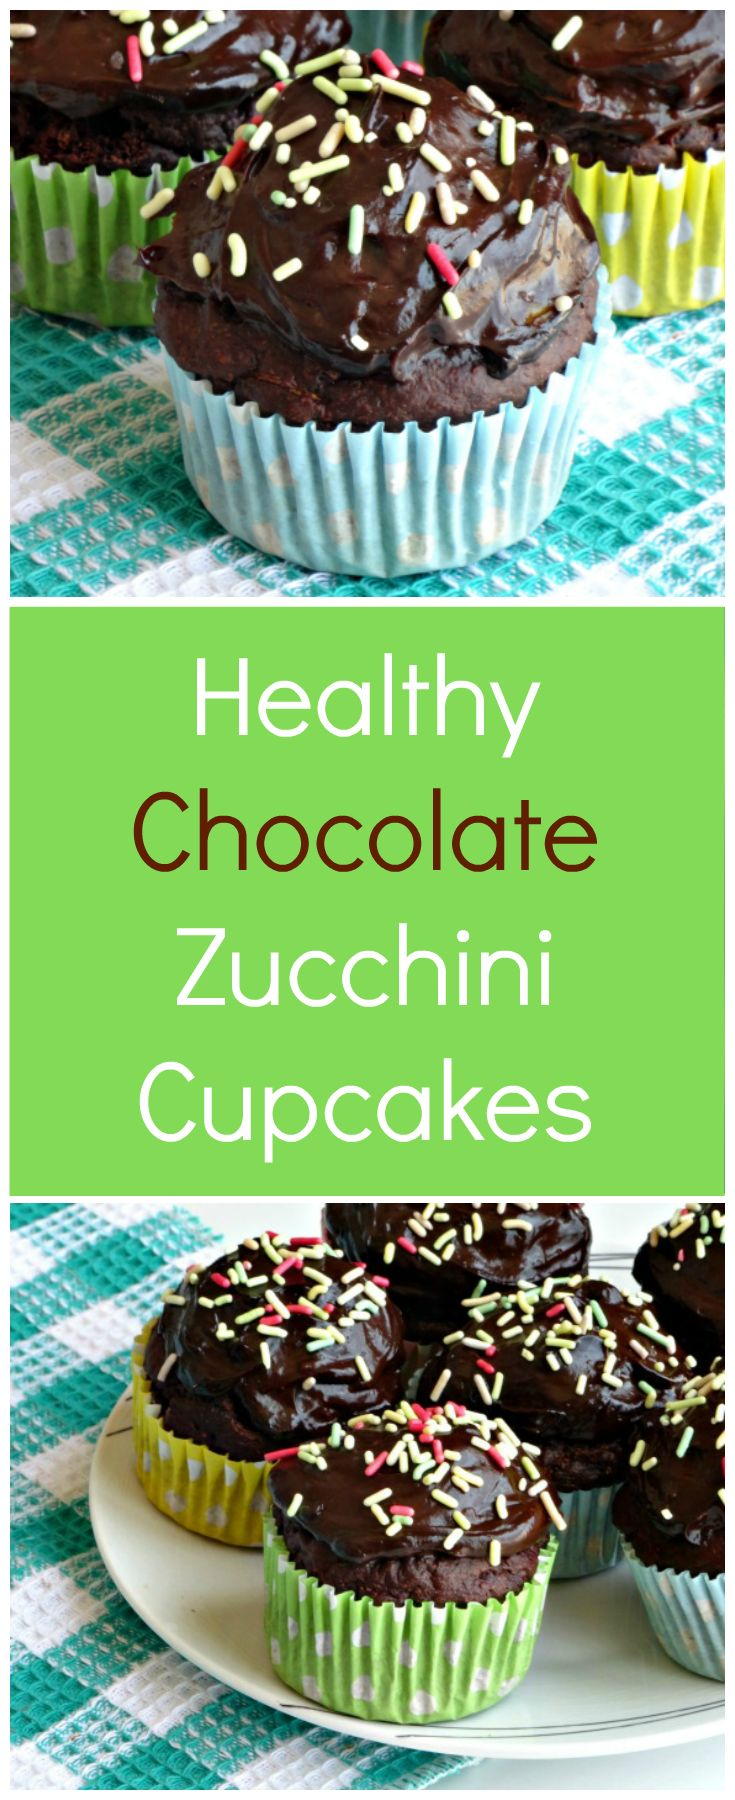 Healthy Chocolate Zucchini Cupcakes Recipe | These are the most moist chocolate zucchini cupcakes ever! They're ideal for baking with kids and taste so great you'd never, ever believe they're healthy - but they are!